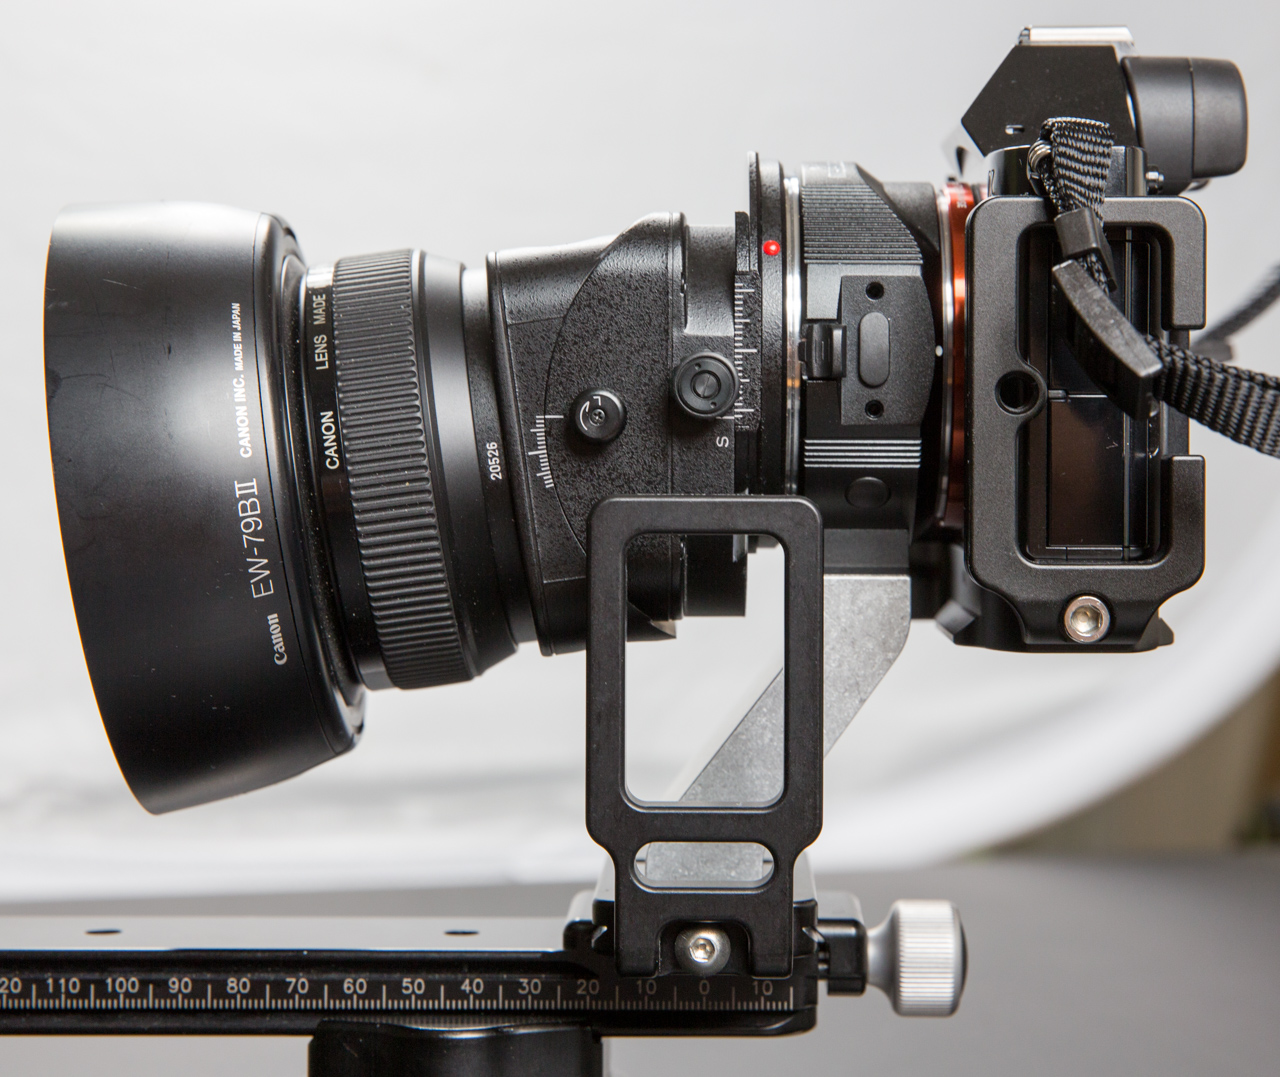 Canon TS-E lens on SONY a7 via Metabones adapter and Hajnar Foot Assembly prototype.